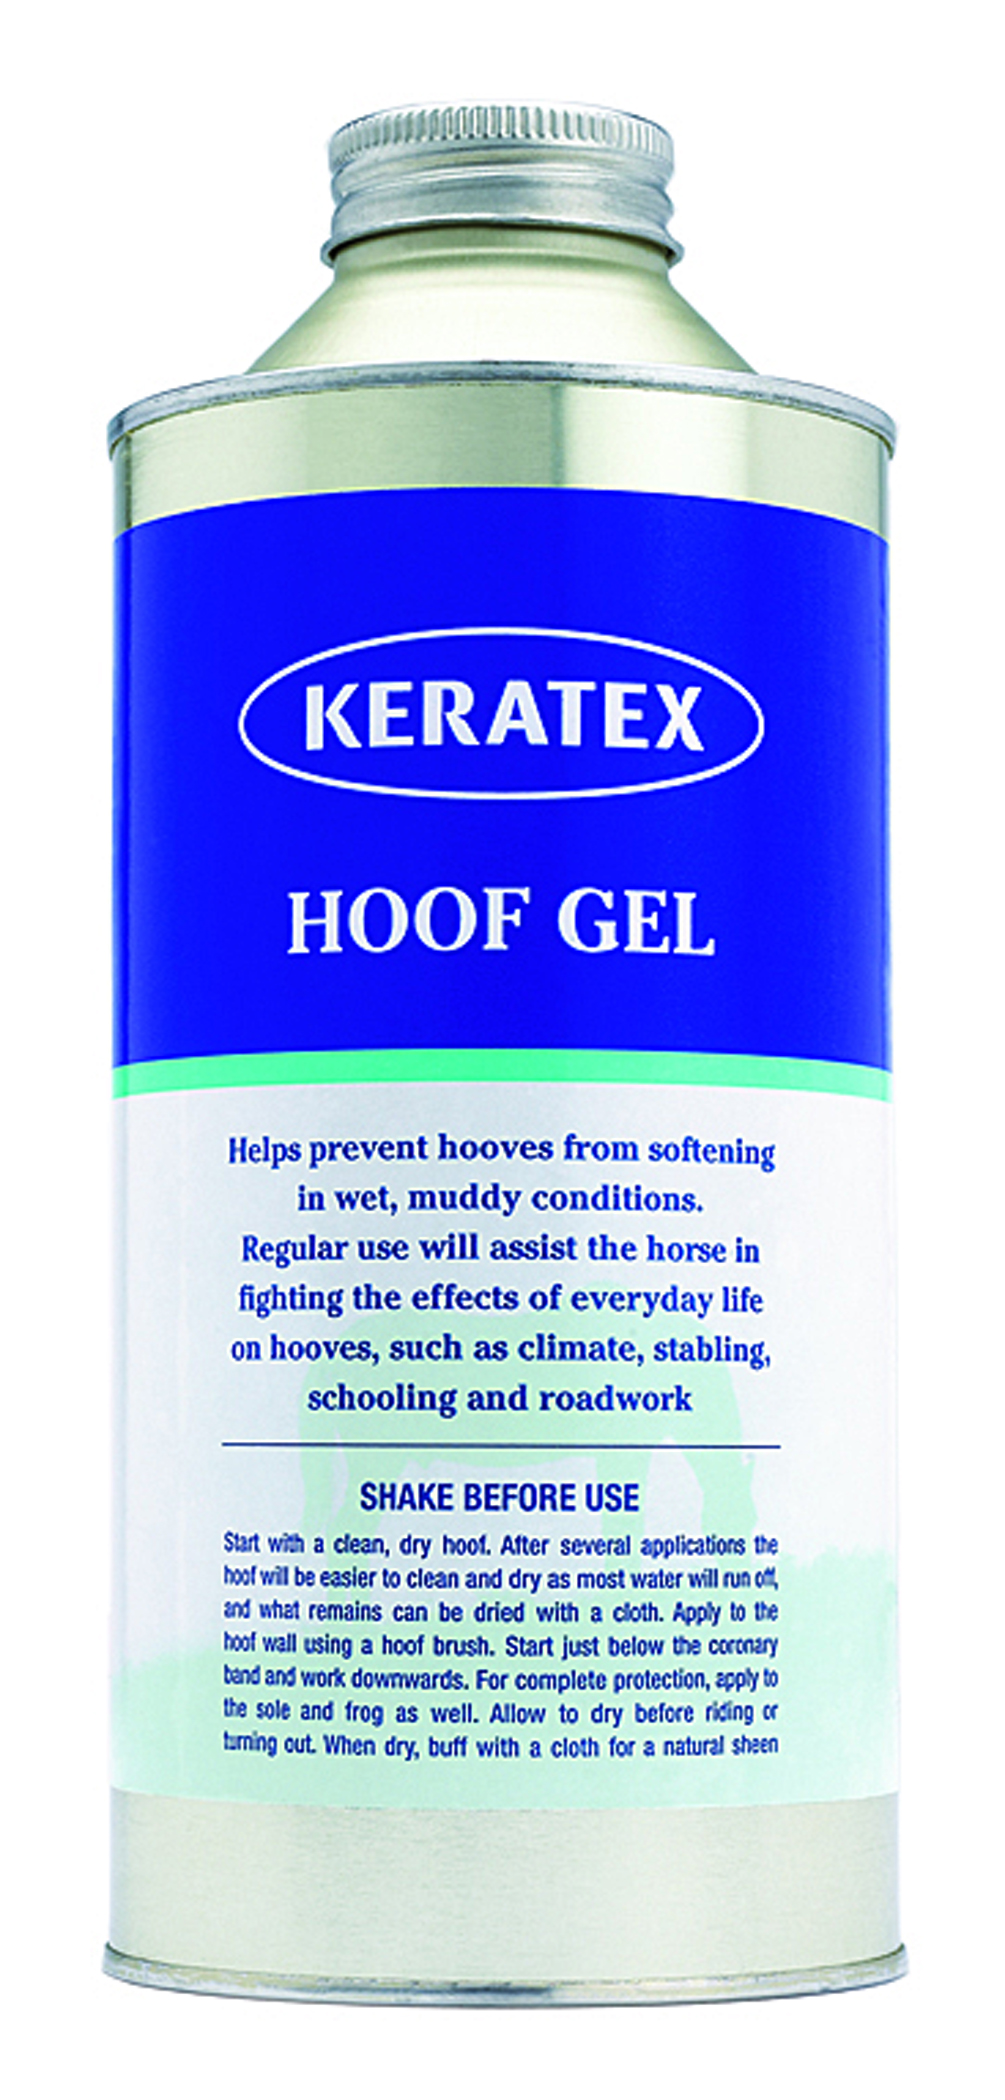 Keratex Hoof Gel